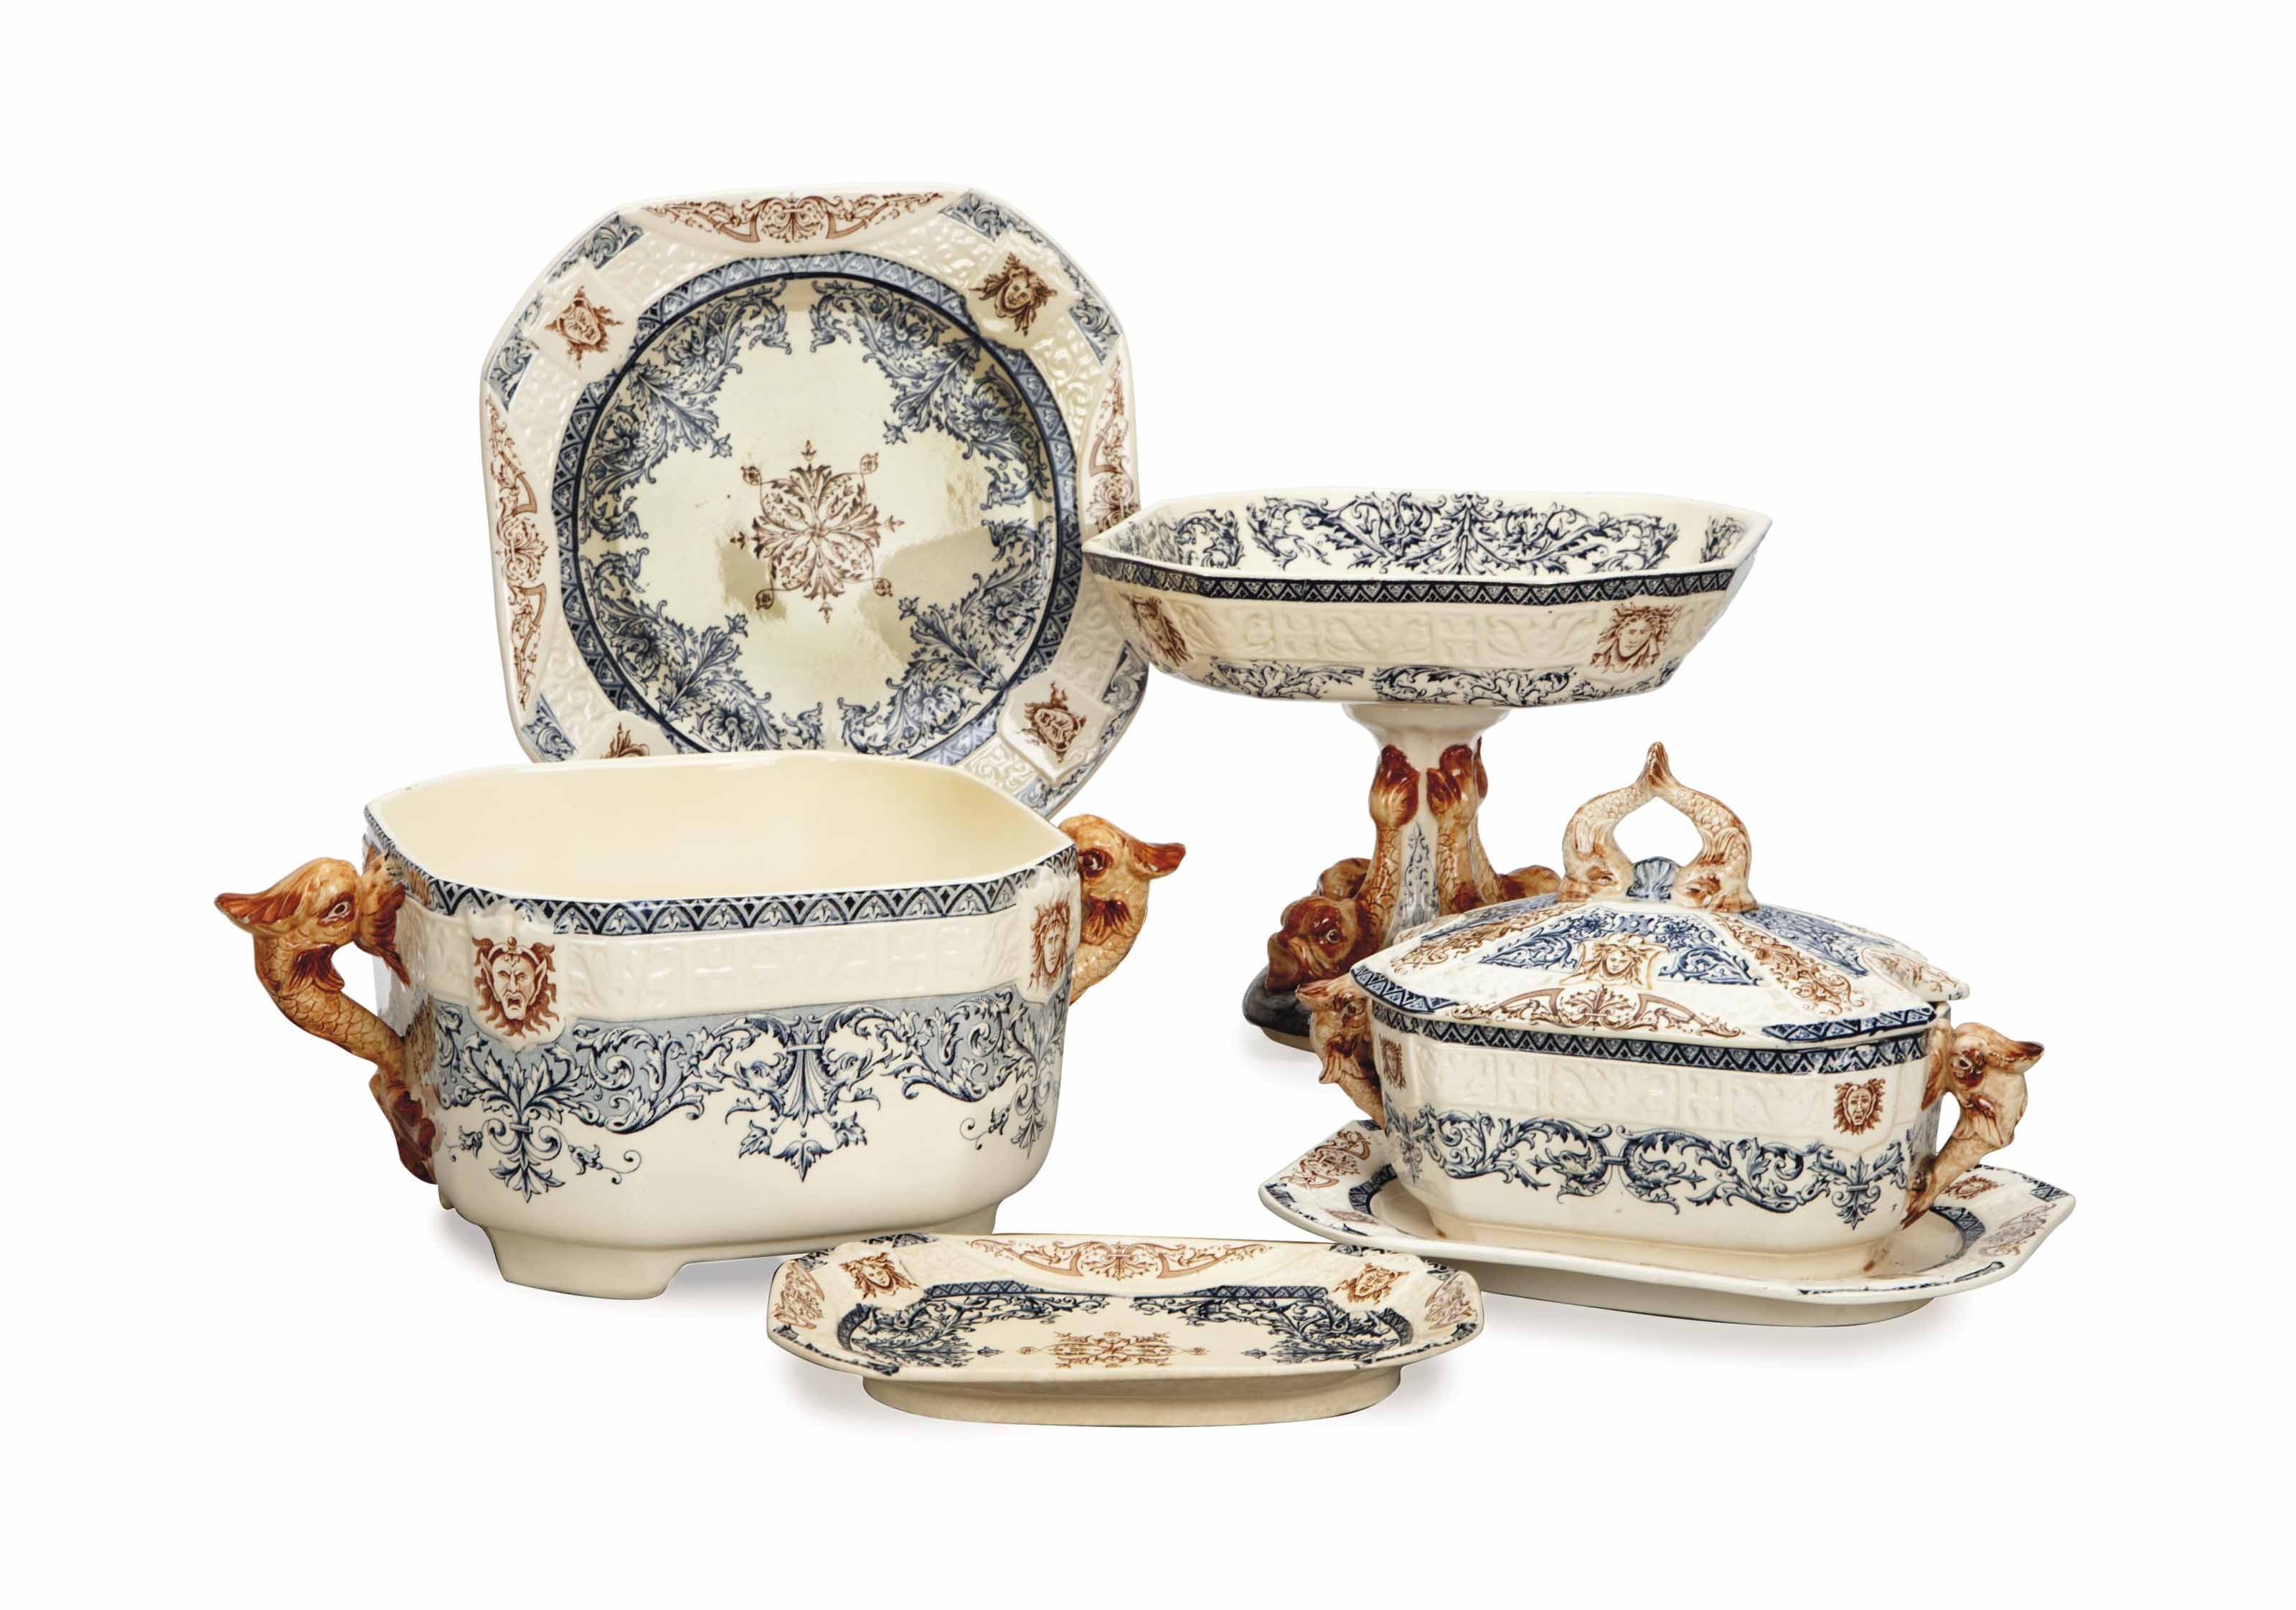 A FRENCH TRANSFER PRINTED PART DINNER SERVICE,